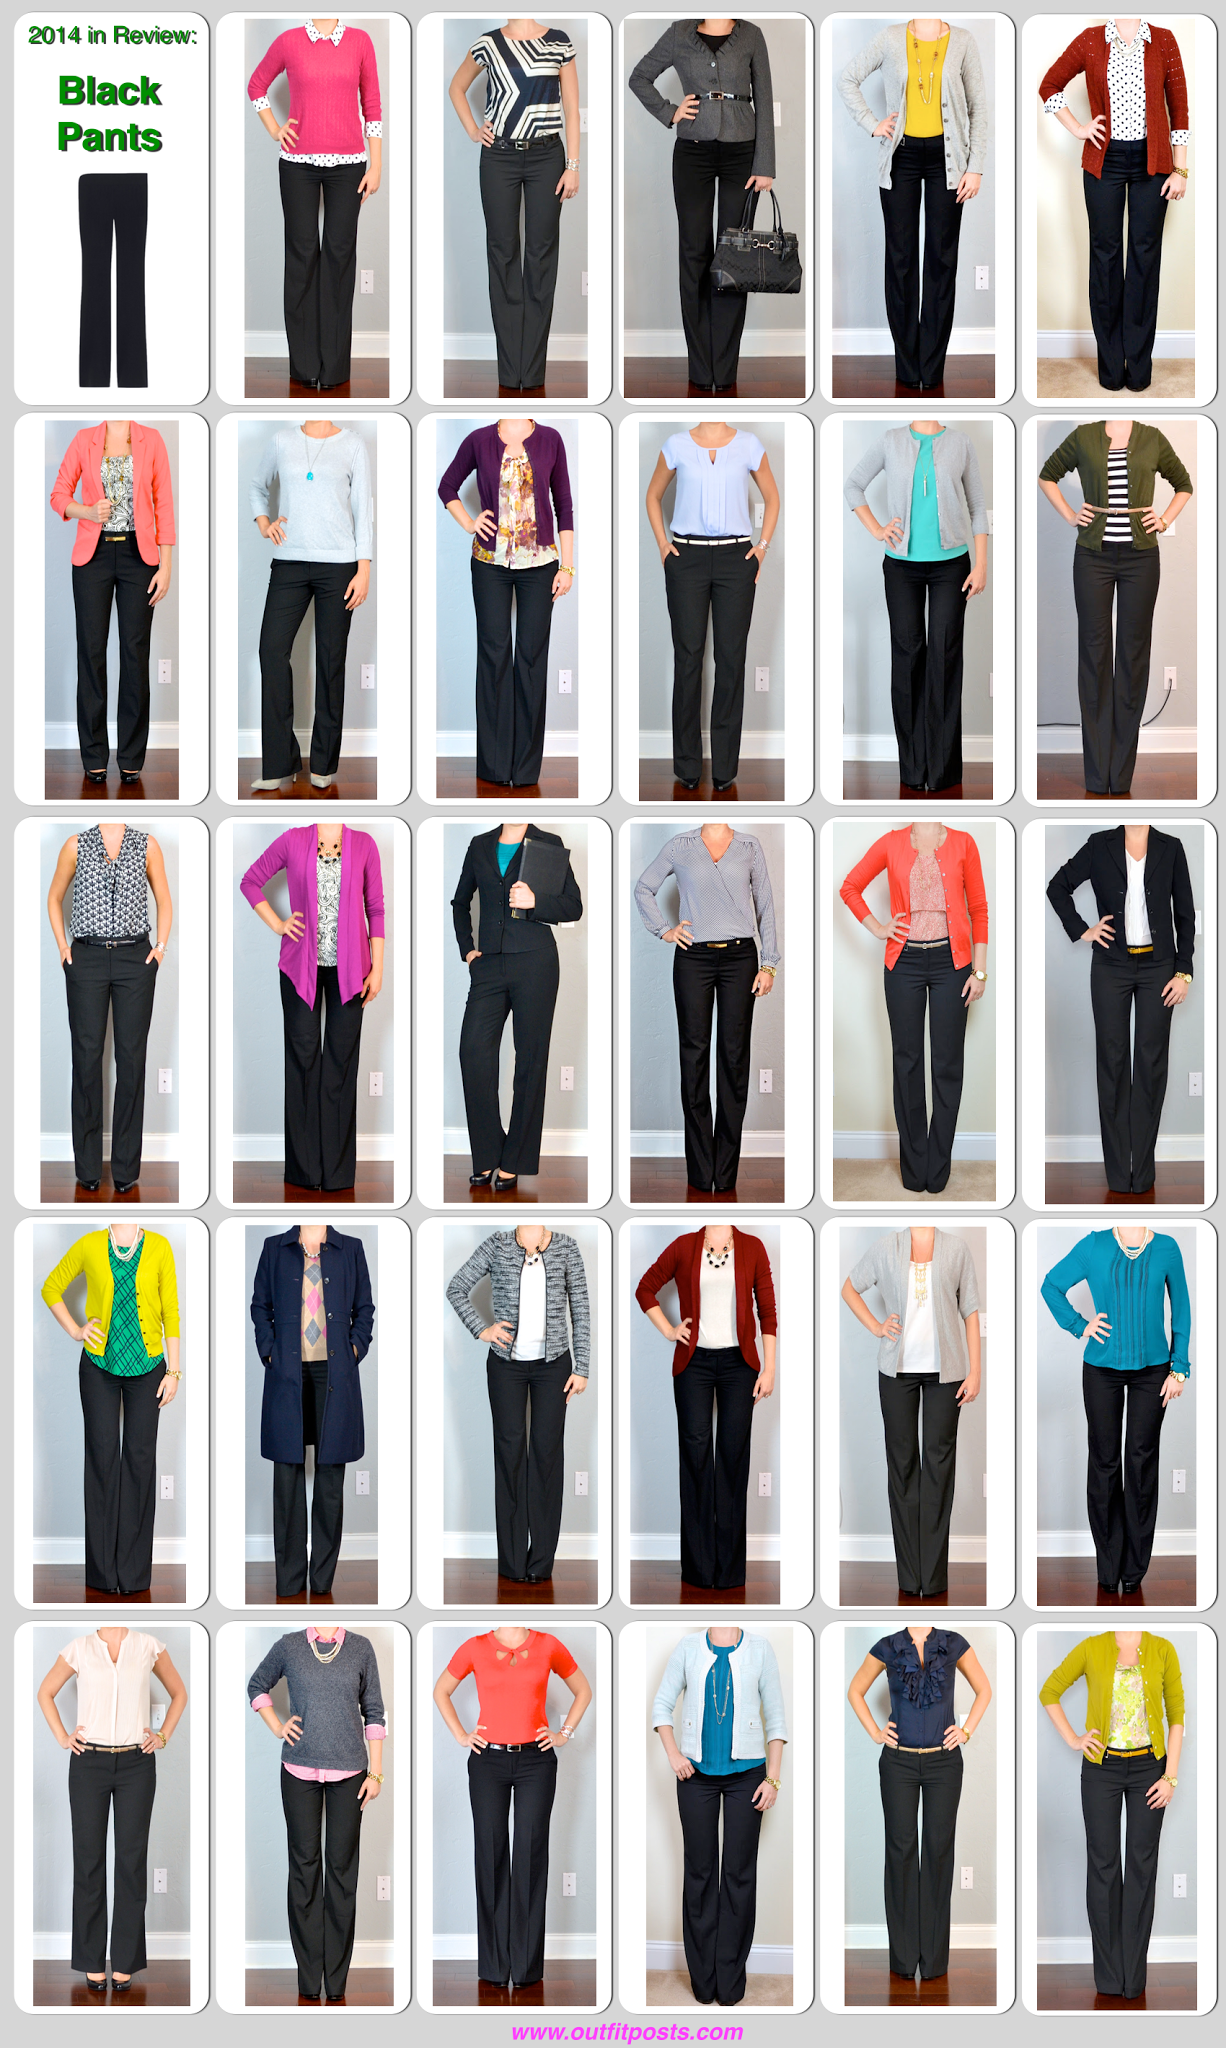 2014 In Review Outfit Posts Black Pants 29 Ways Fashion Outfit Posts Work Outfit [ 2048 x 1226 Pixel ]